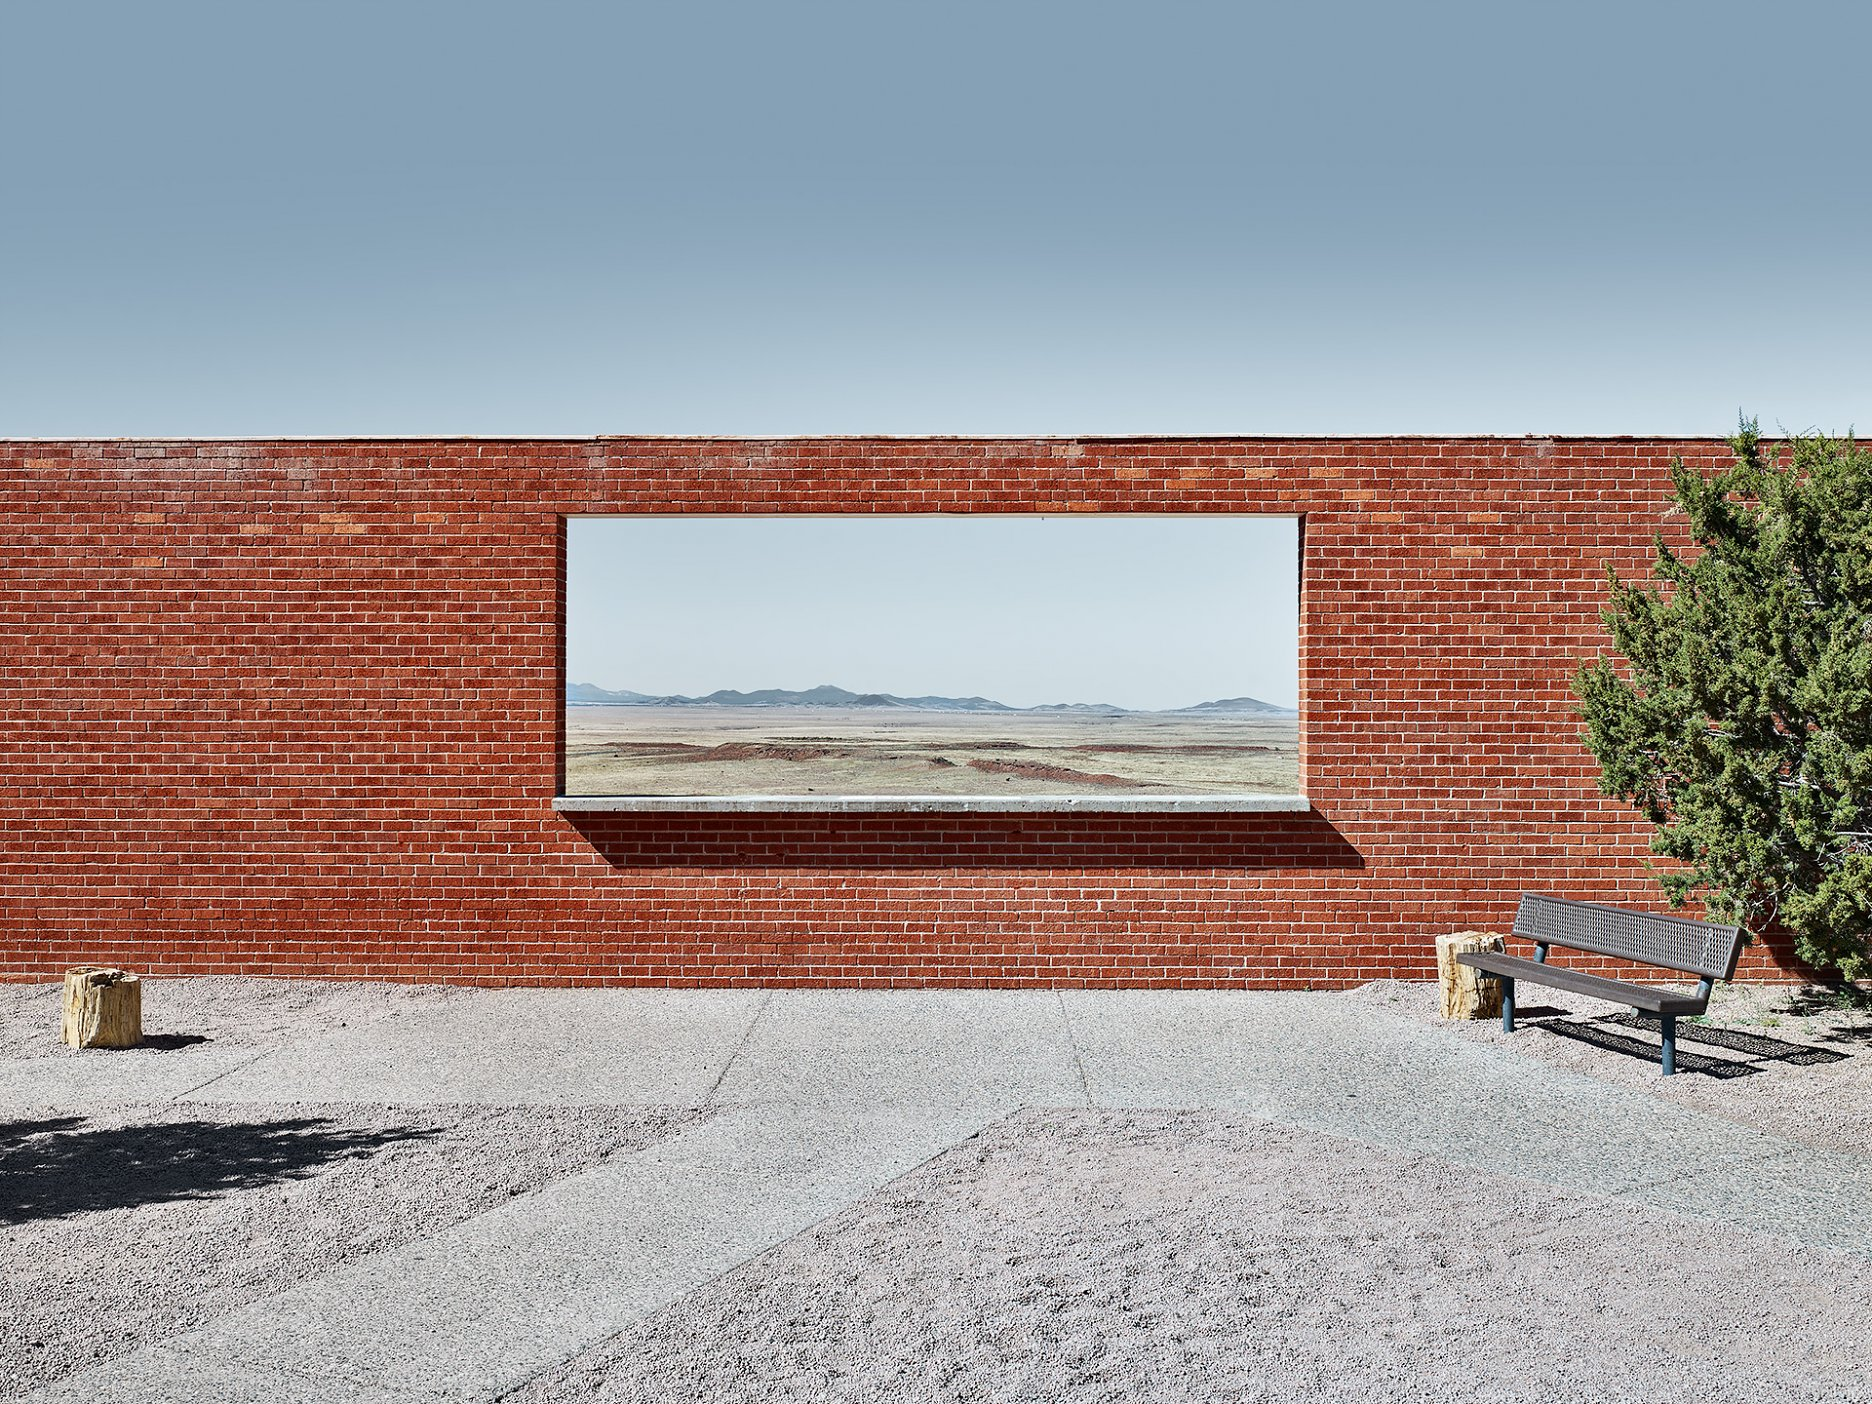 The Wall Frame, Arizona, Barrington Crater entrance compound, Arizona, 2015